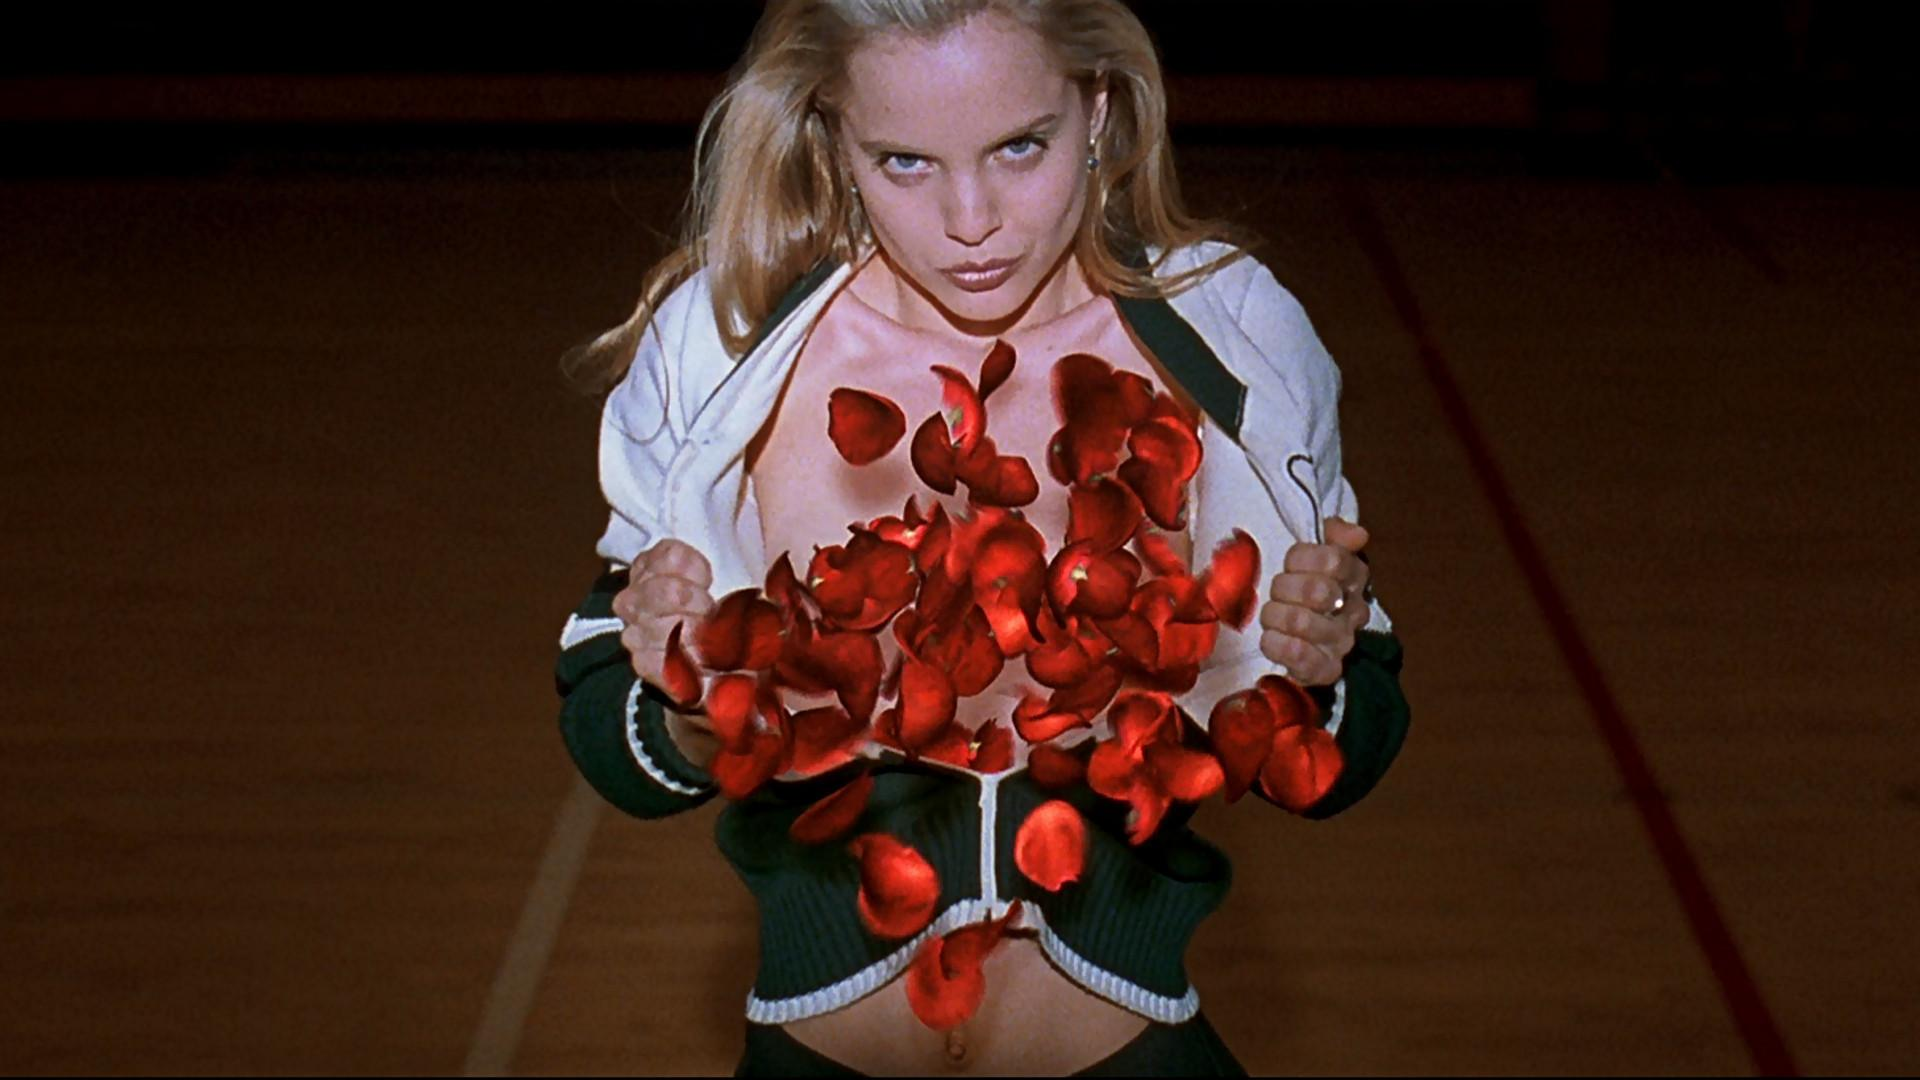 an analysis of the opening section of the movie american beauty This theme of technology ensnaring and enslaving man is emphasised in the opening section of the film, which takes place in a bizarre factory in which all workers are monitored and overseen by giant orwellian monitors.